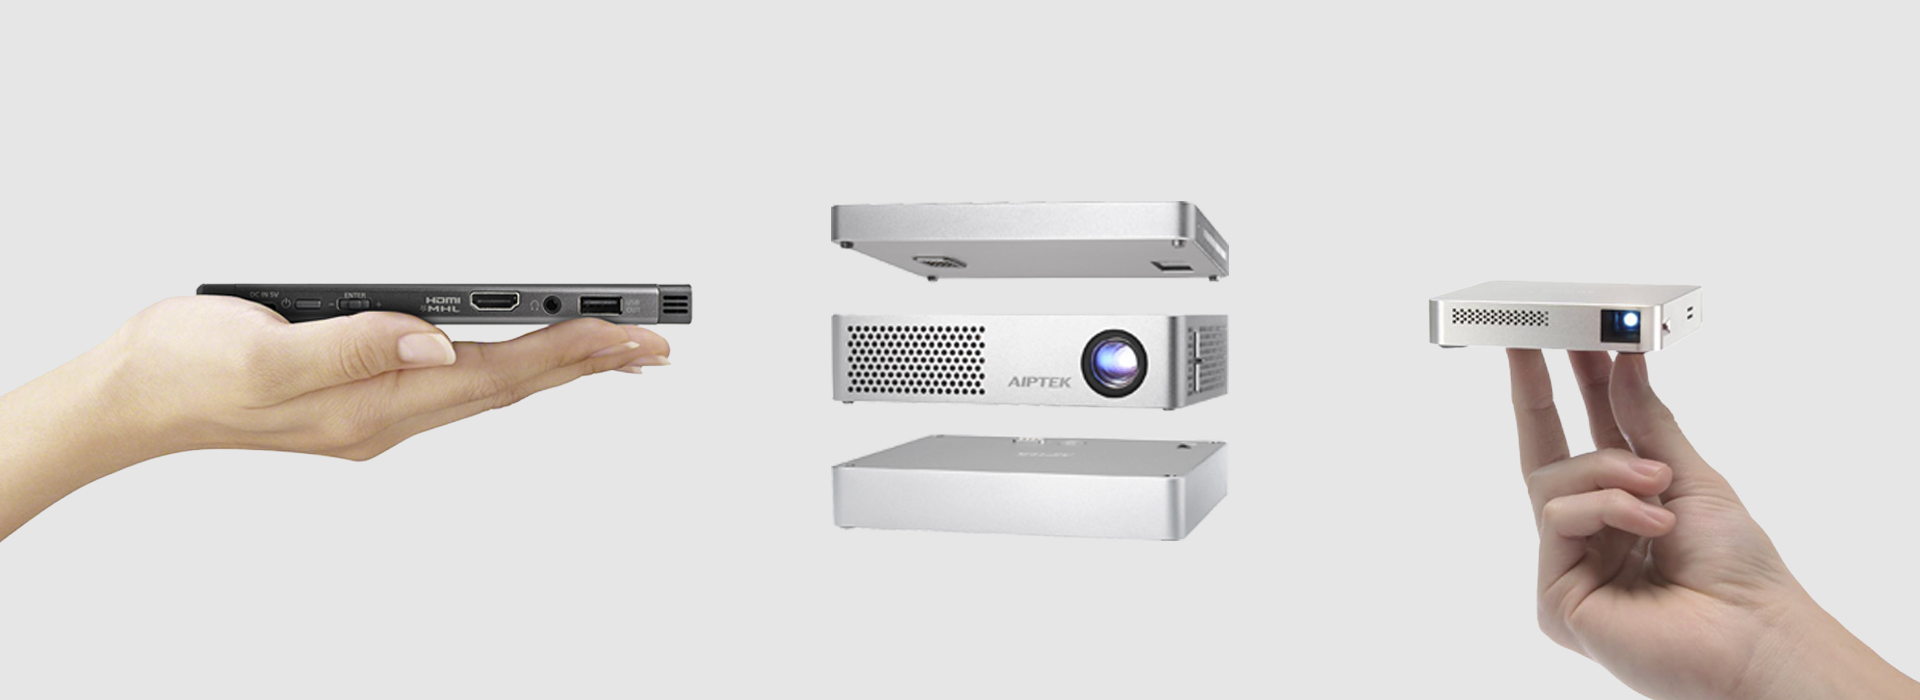 Portable Projectors-expertscomputerllc